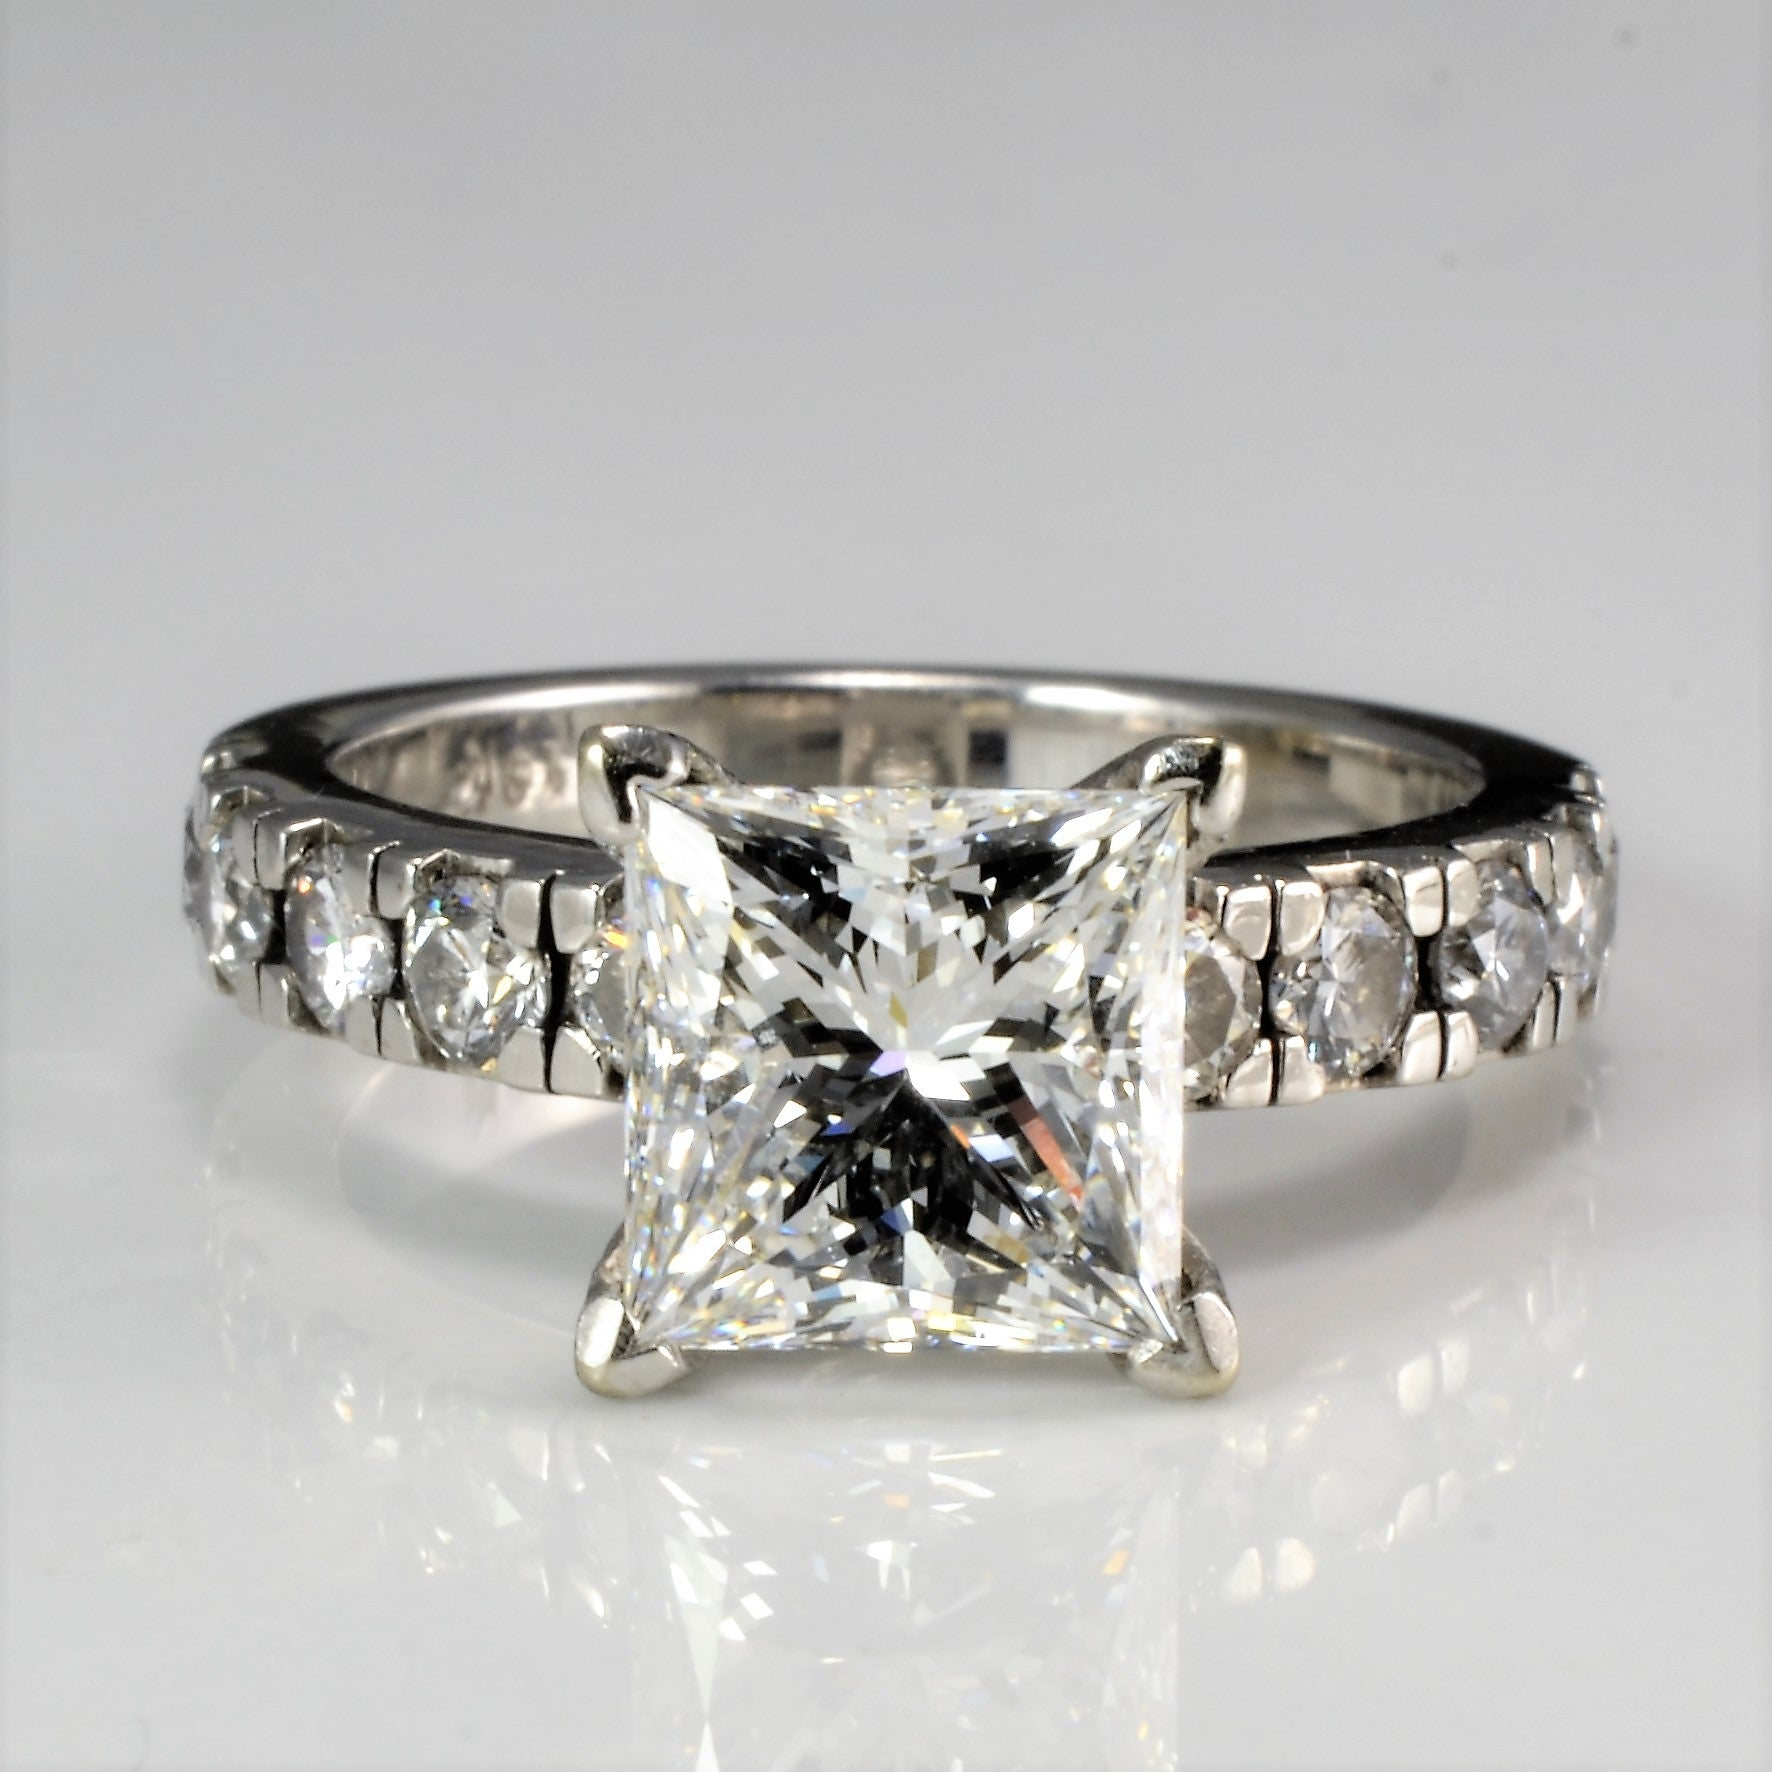 Solitaire with Accents Diamond Engagement Ring | 2.56 ctw, SZ 4.75 |